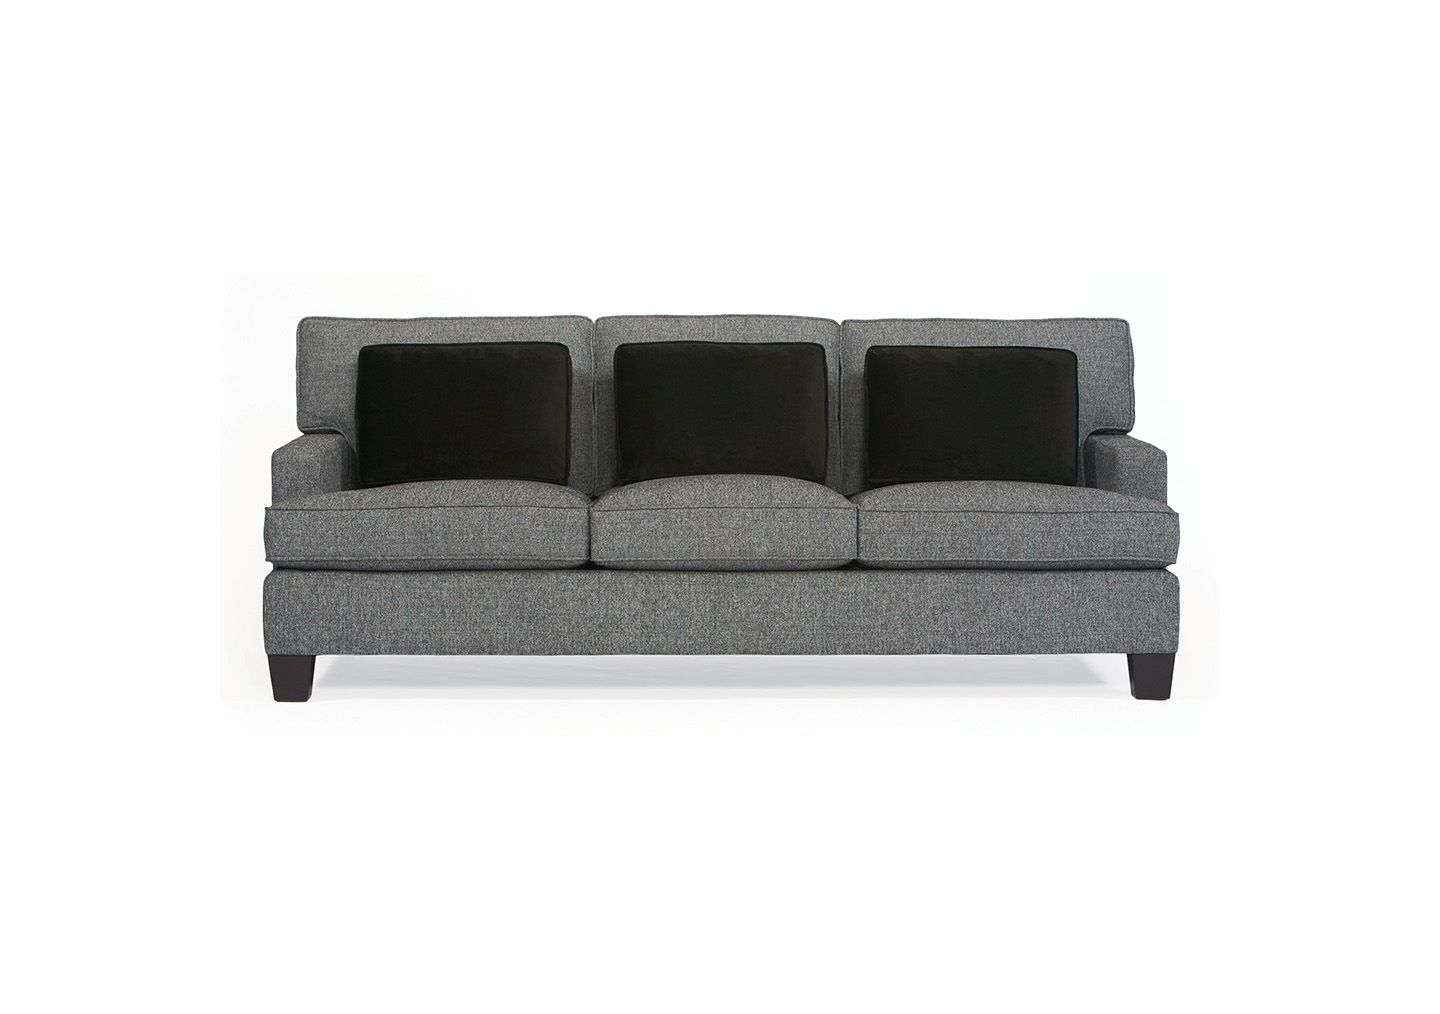 Bernhardt denton sofa set collier 39 s furniture expo for Bernhardt furniture